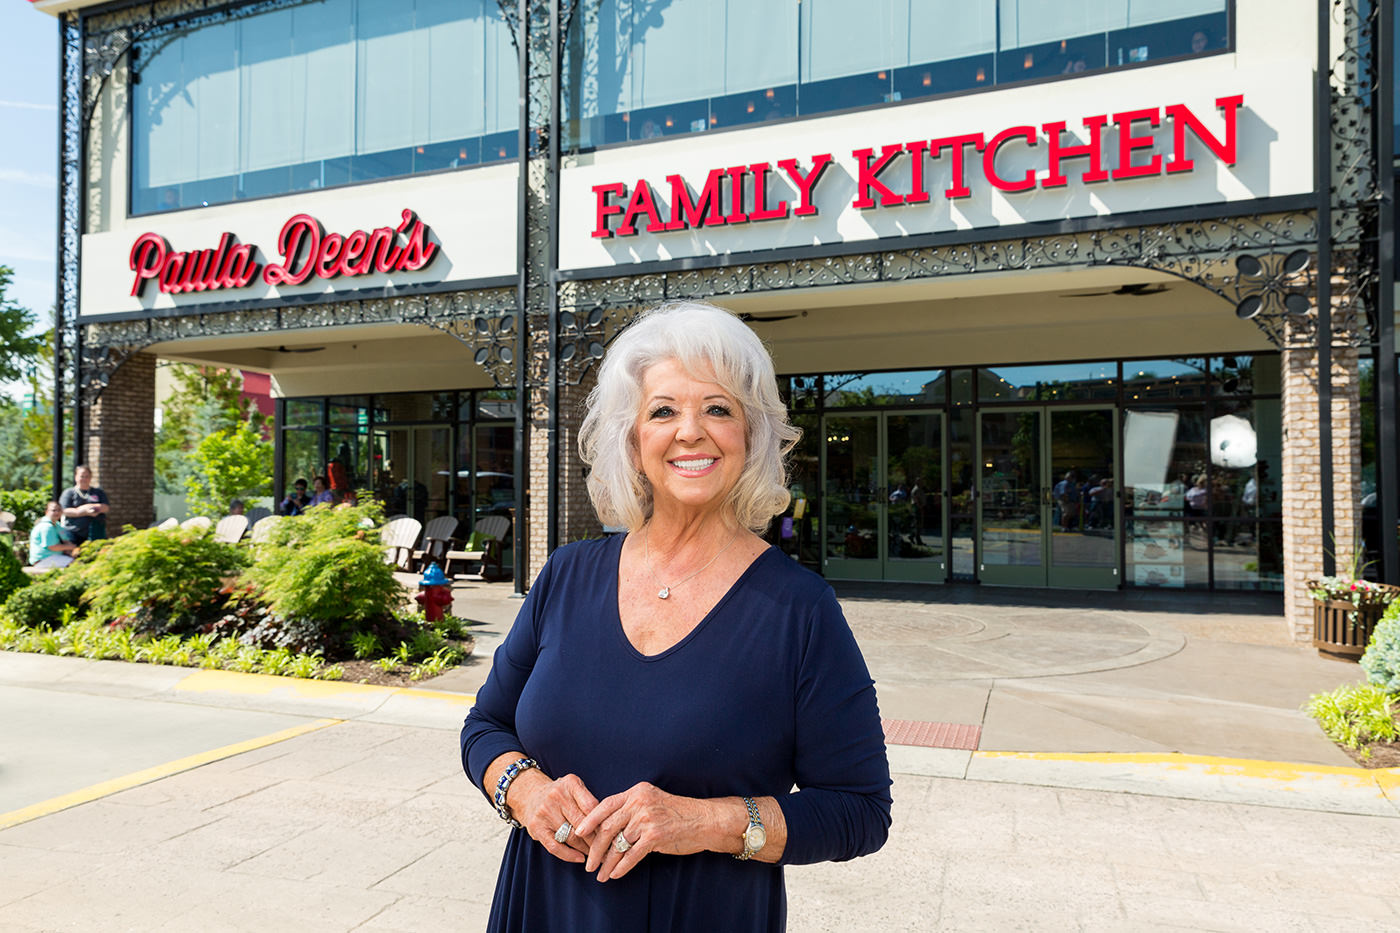 paula deen kitchen retro clock s family at the island in pigeon forge